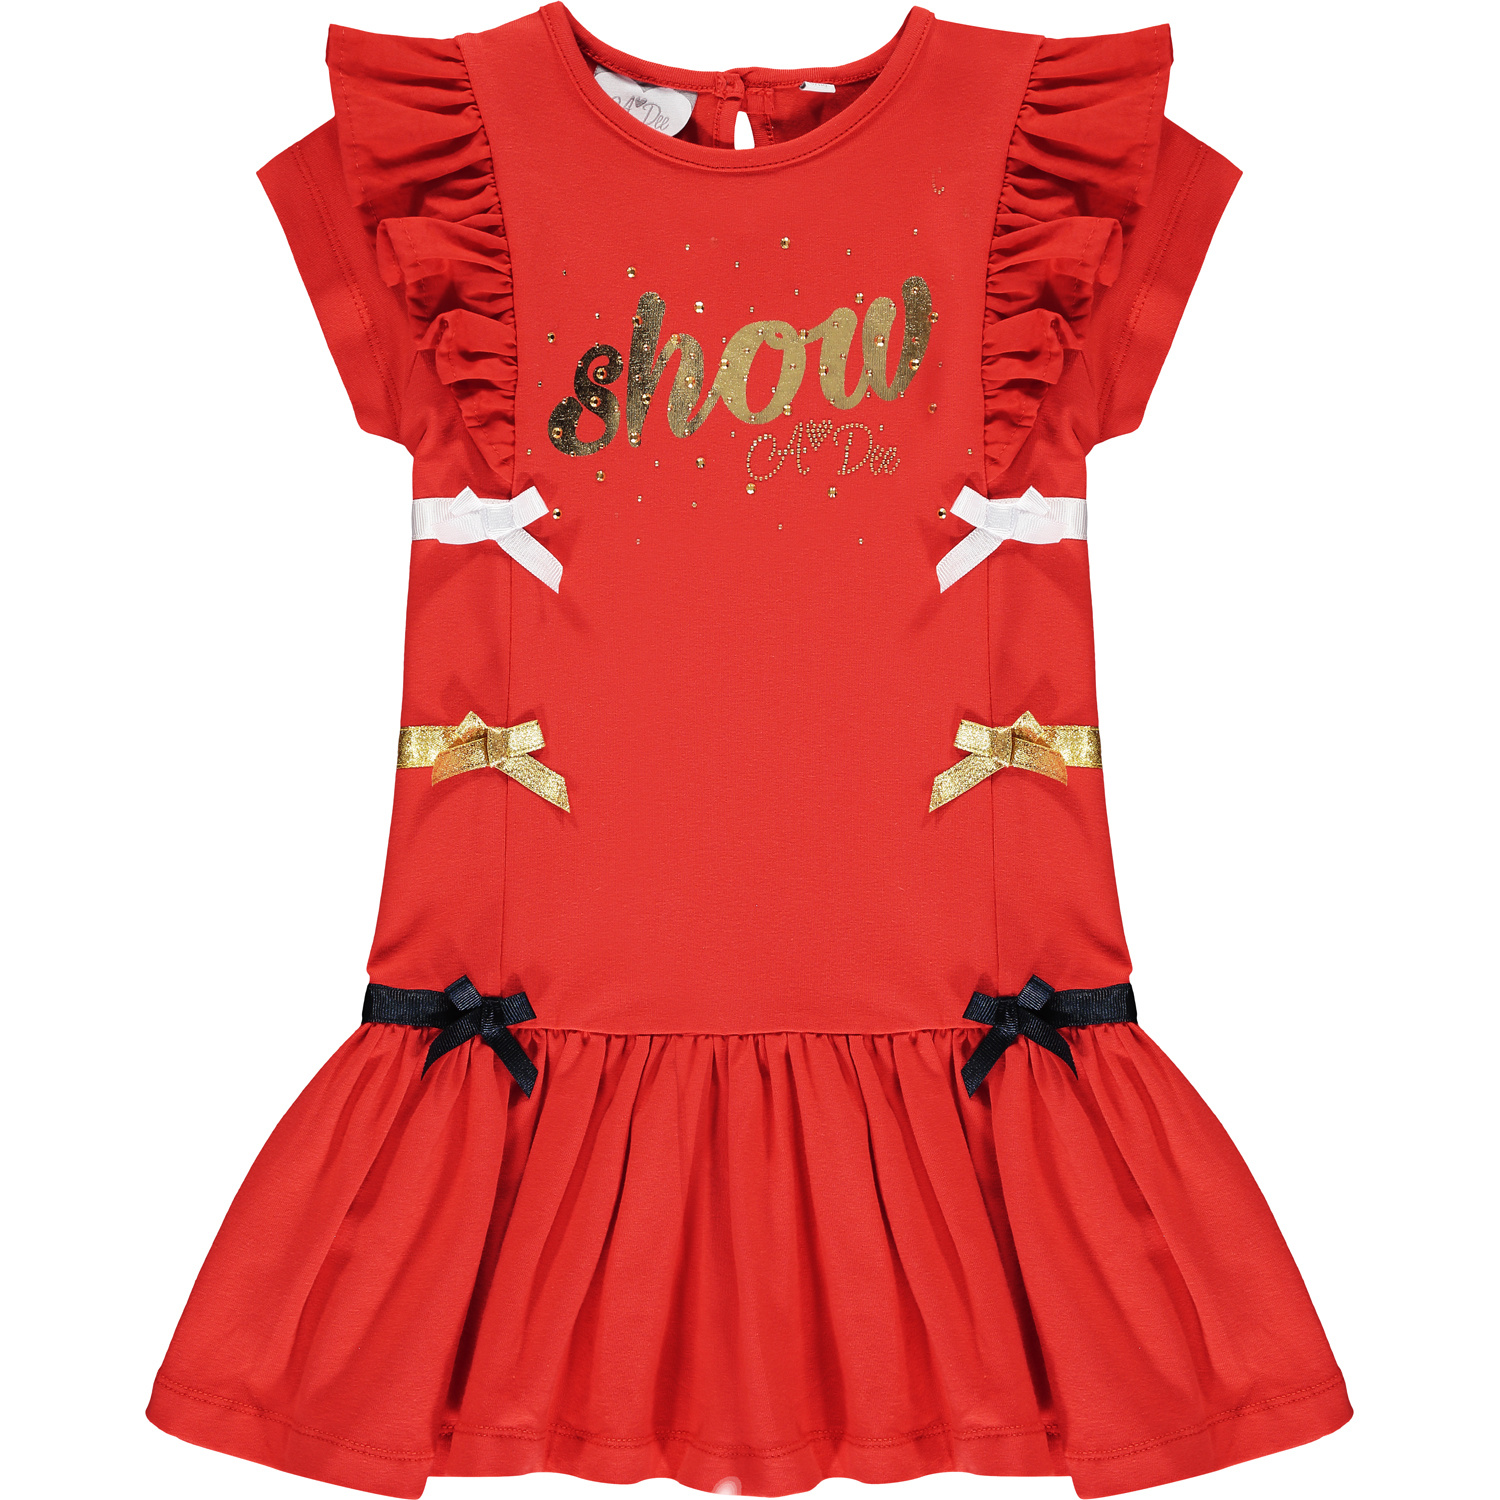 Adee Adee Mabel Show Dress